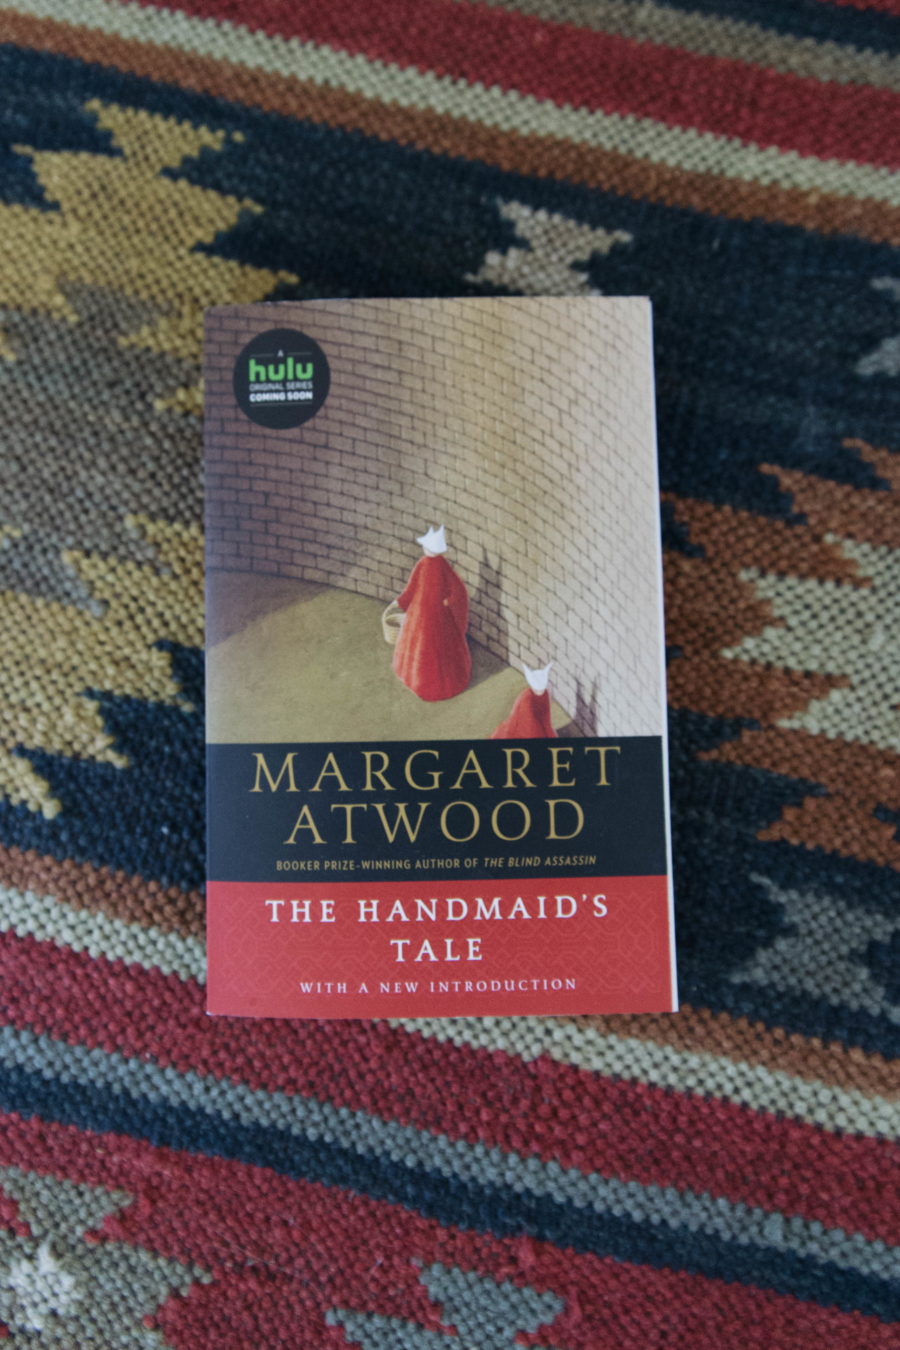 Summer 2017 Reading List The Handmaid's Tale by Margaret Atwood